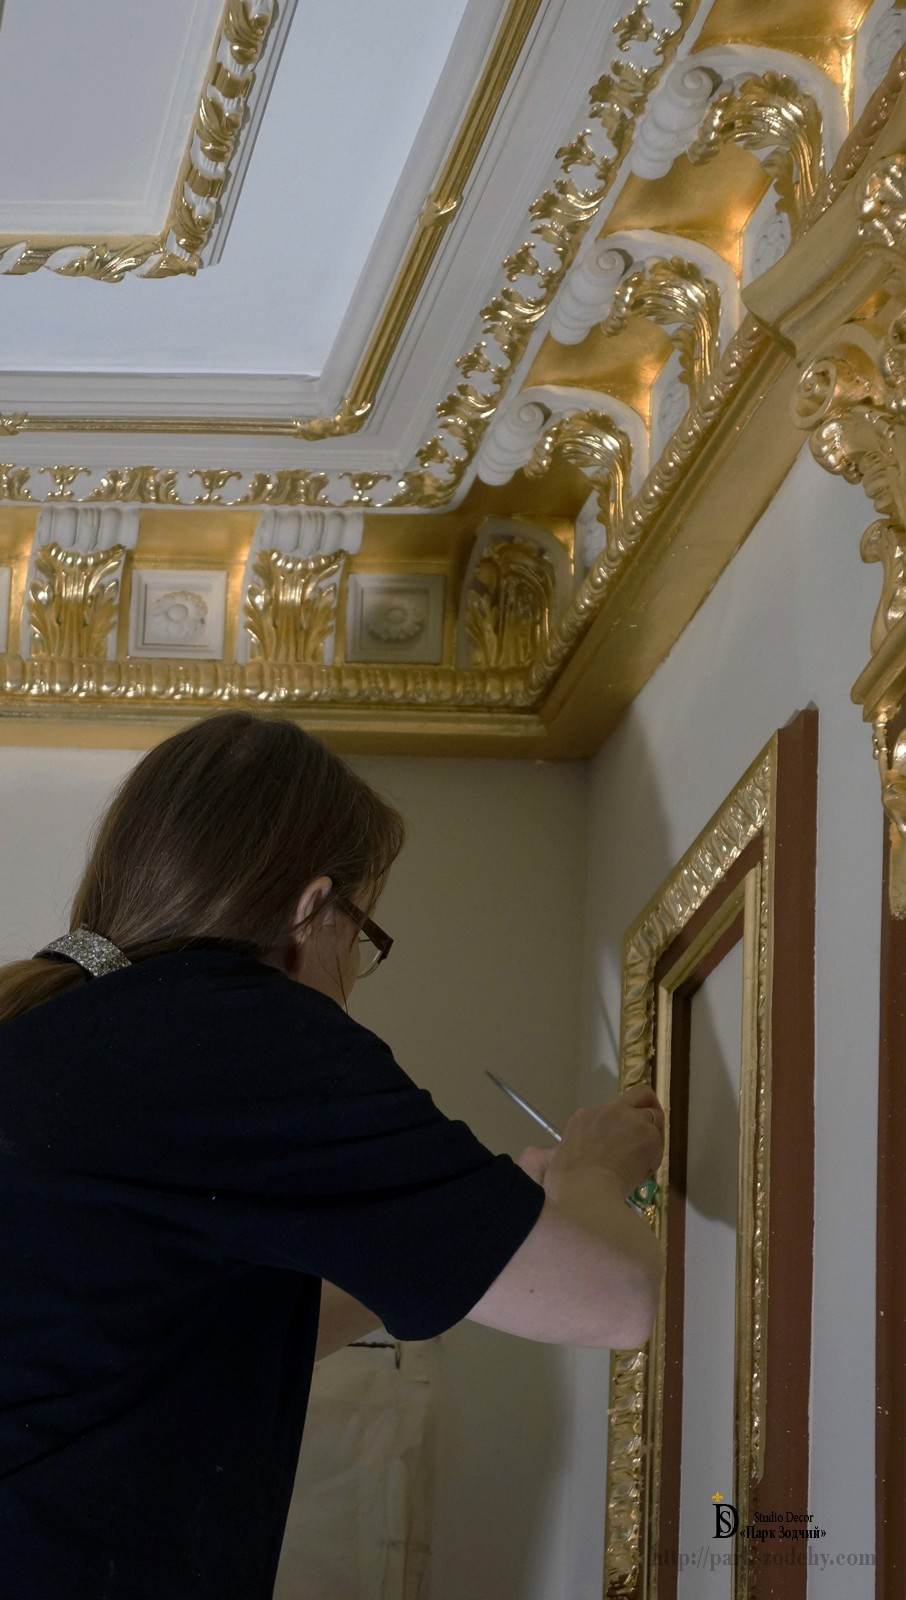 Gilding the gilding of the stucco mirror